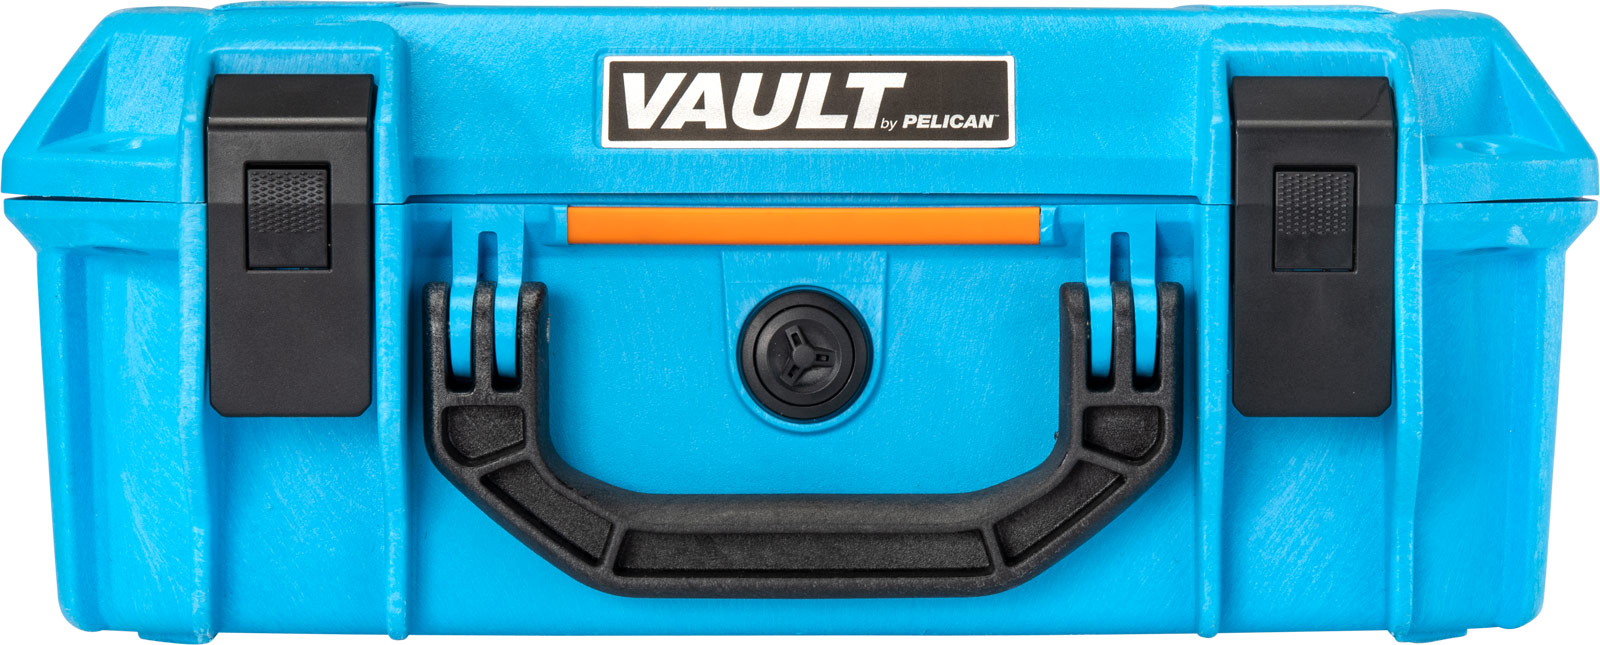 pelican blue vault color cases v200 case